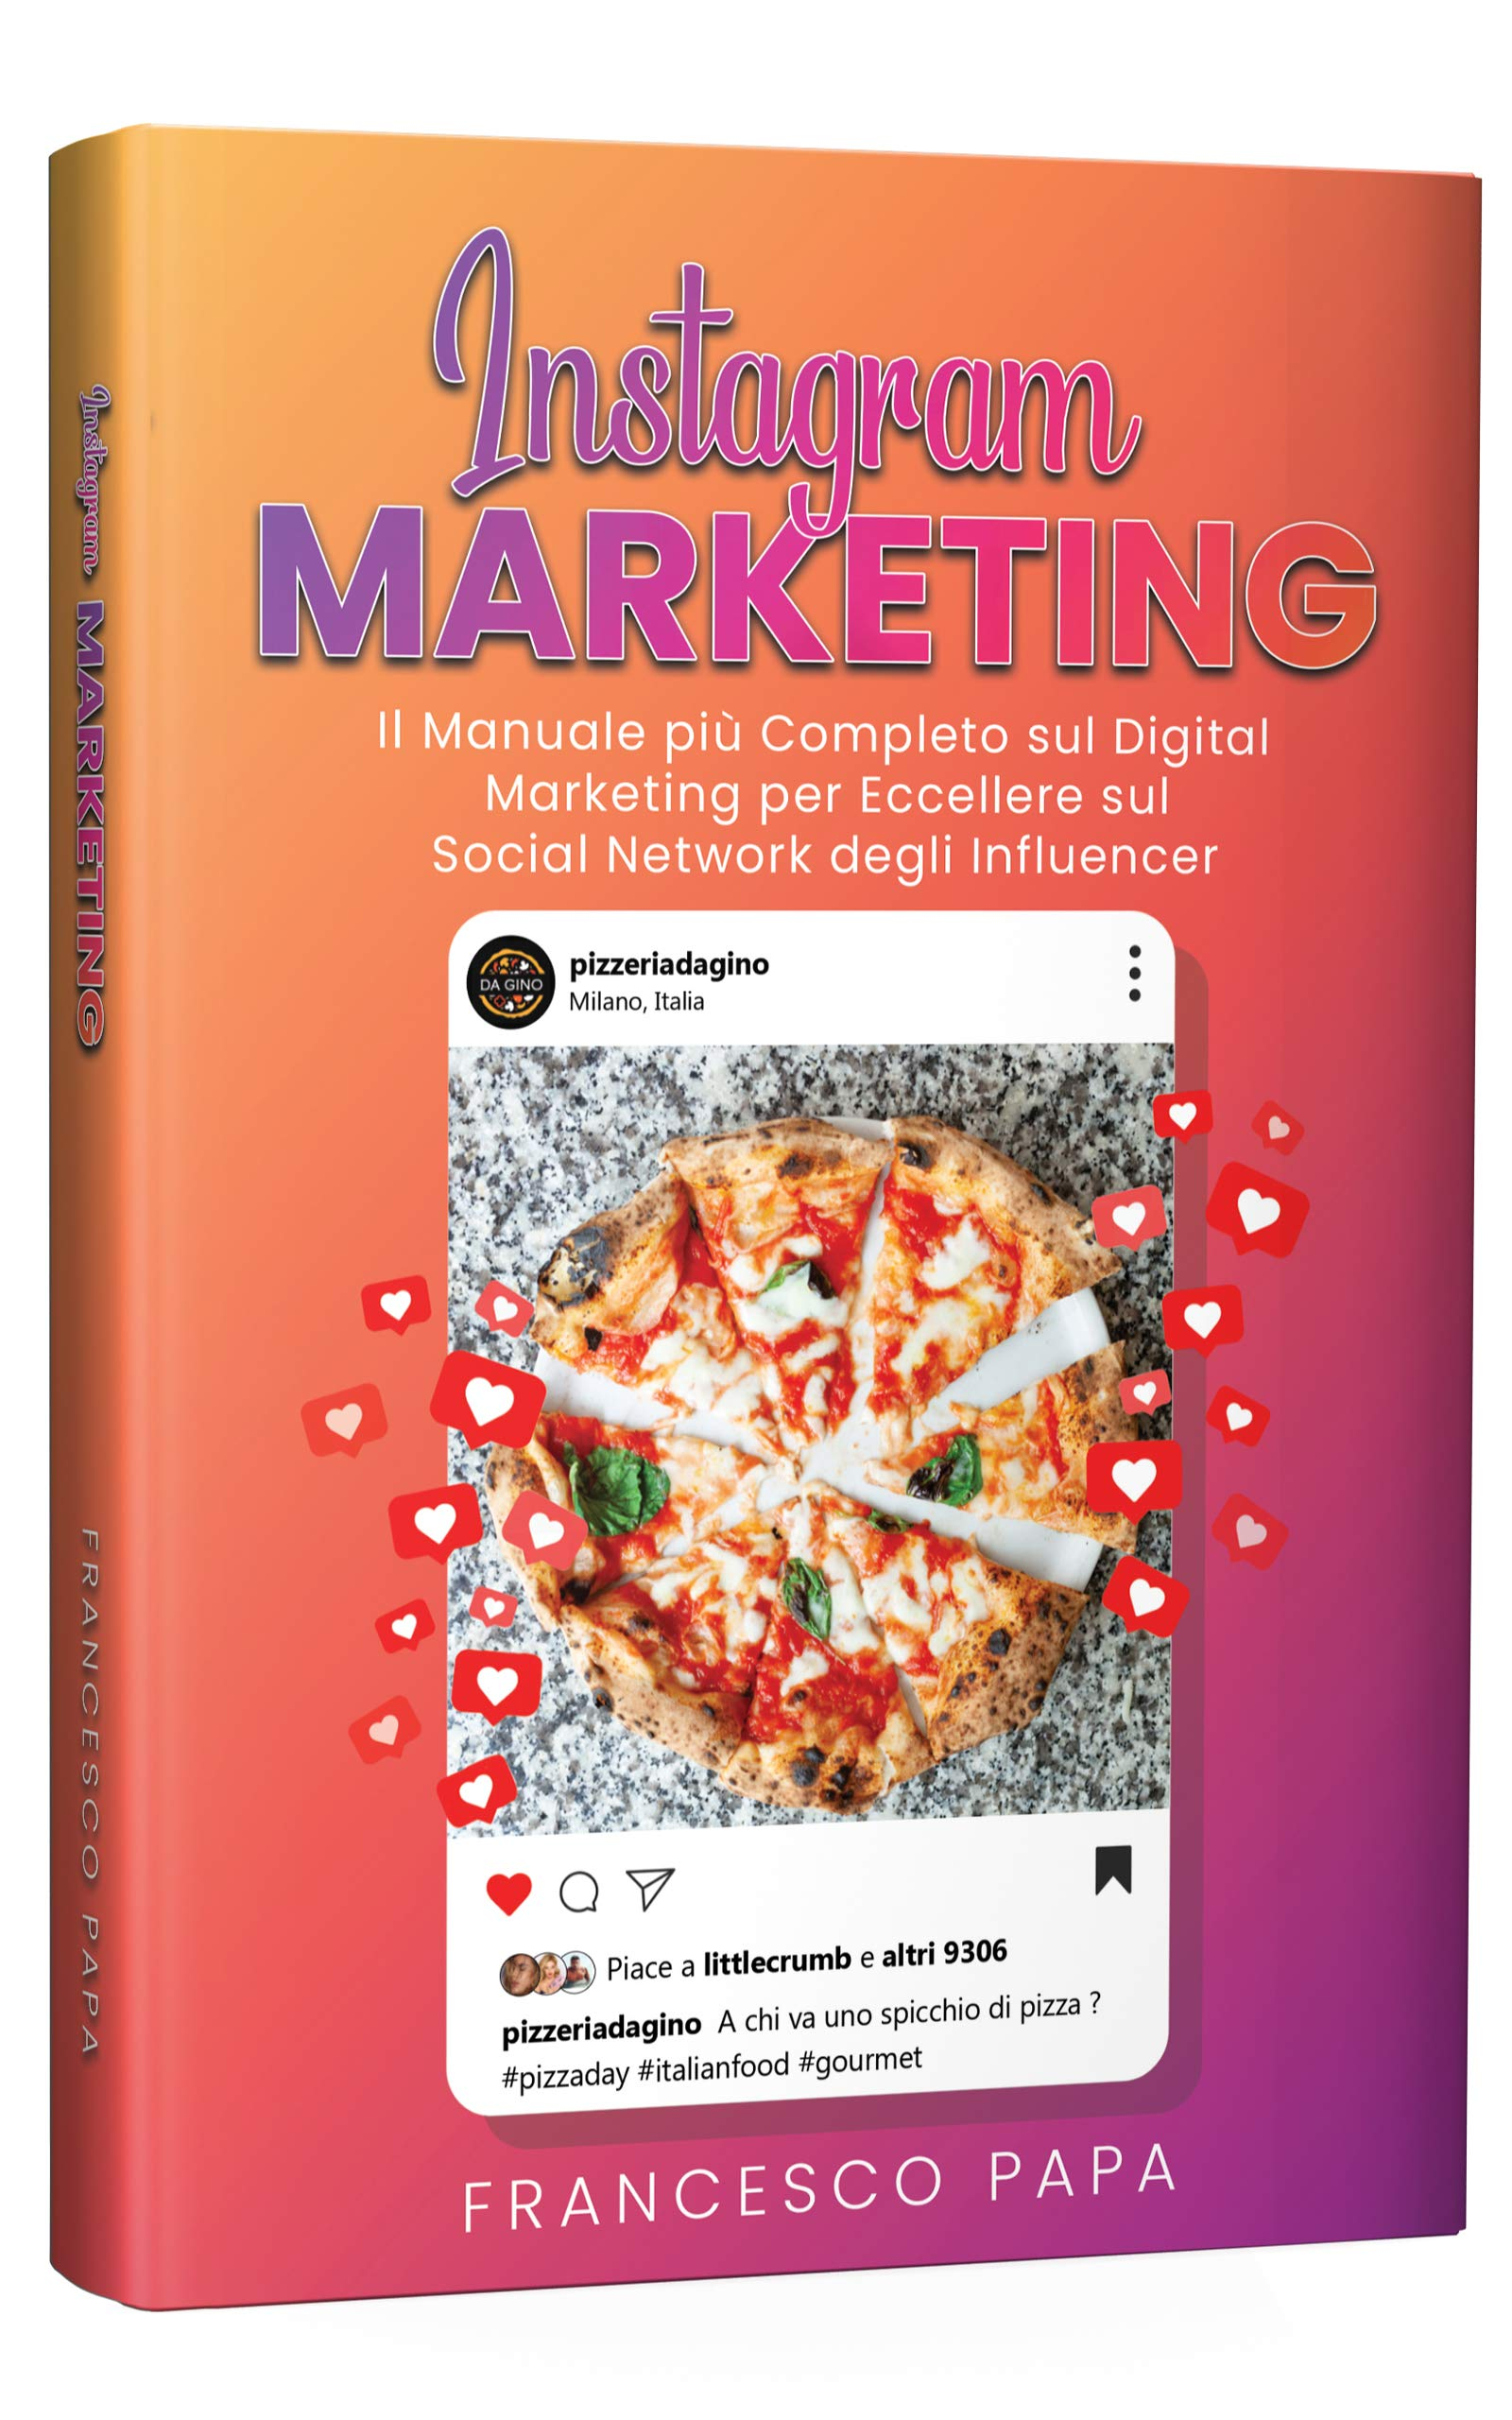 Image OfInstagram Marketing: Il Manuale Più Completo Sul Digital Marketing Per Eccellere Sul Social Network Degli Influencer